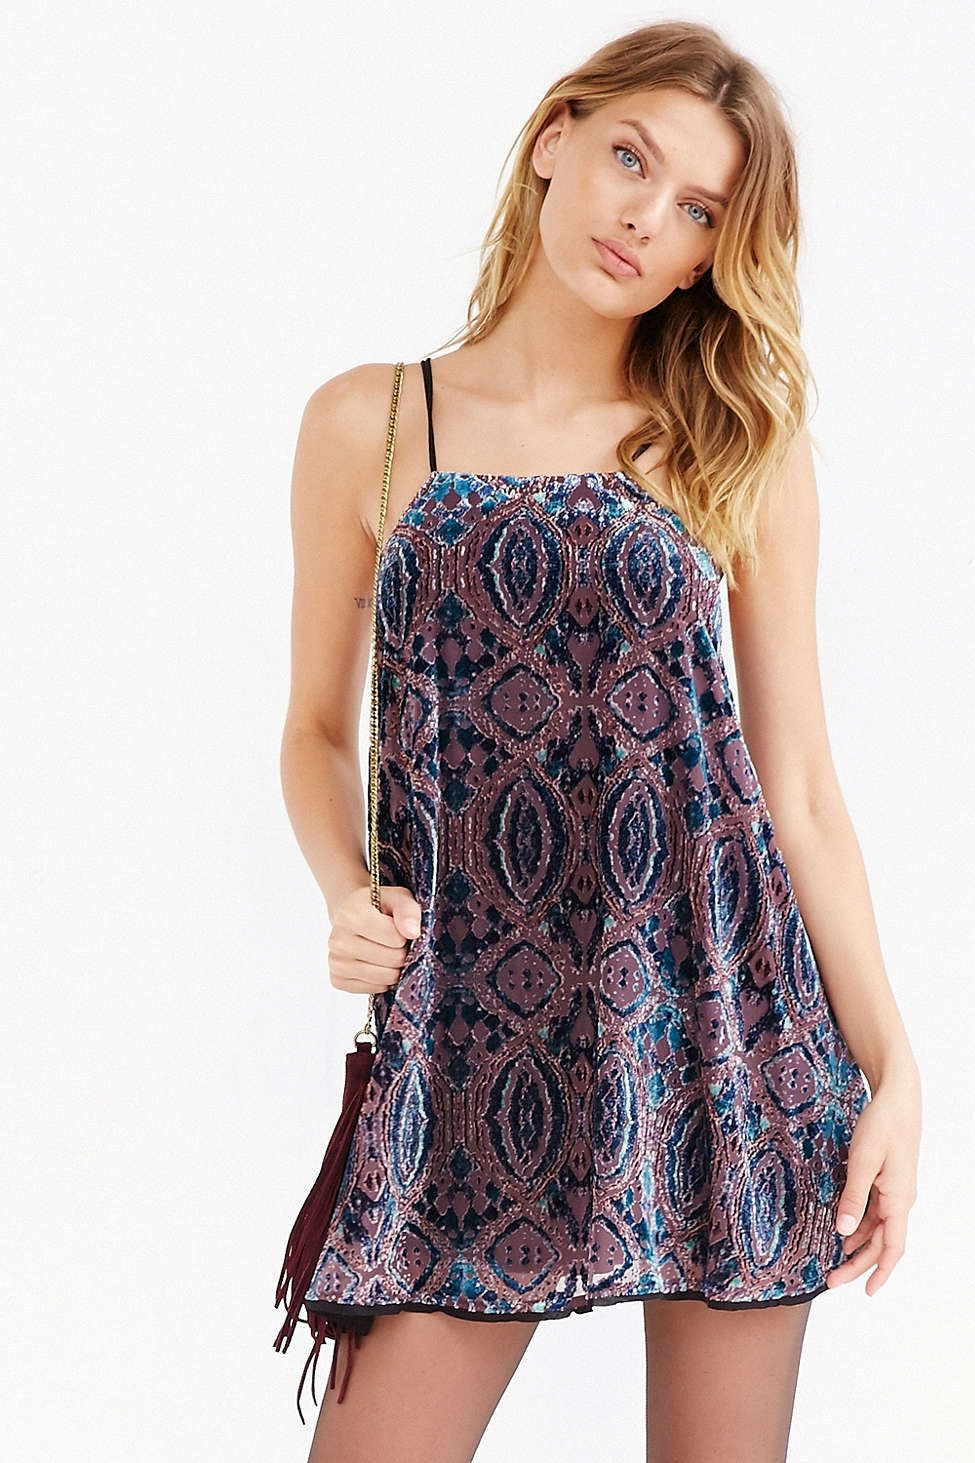 Ecote Burnout Velvet Frock Dress - Urban Outfitters